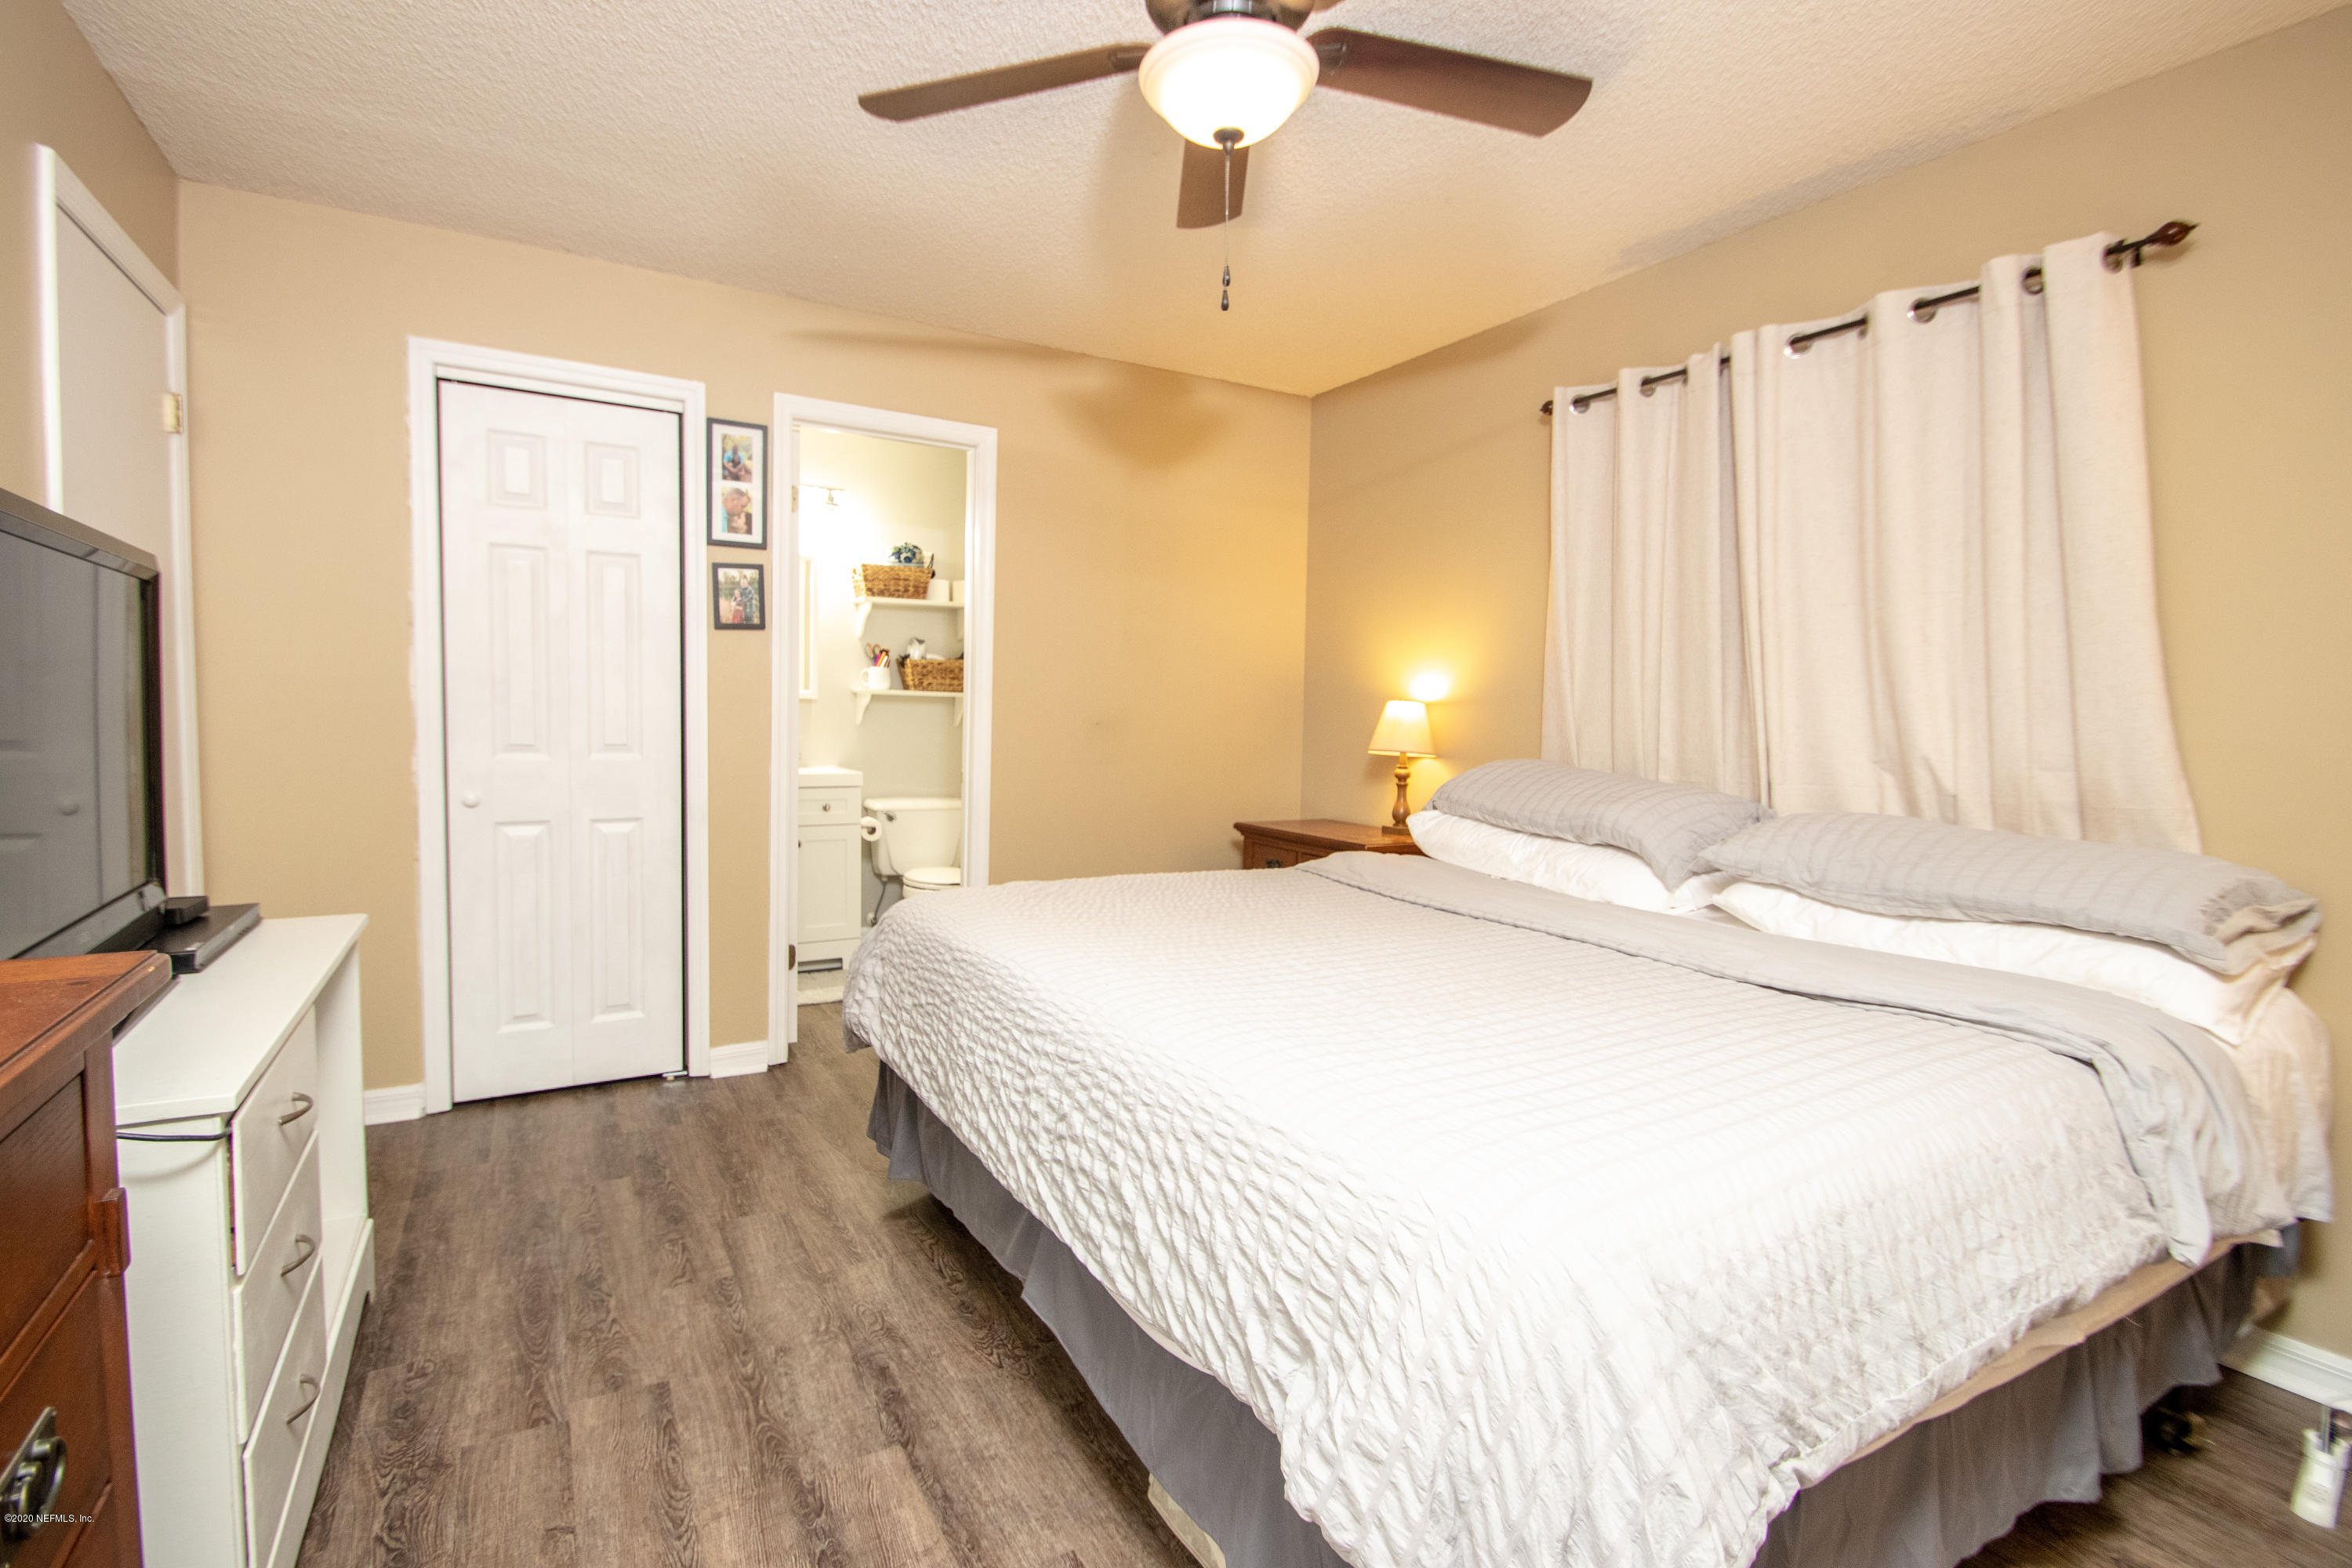 108 HOTEL, MELROSE, FLORIDA 32666, 3 Bedrooms Bedrooms, ,2 BathroomsBathrooms,Residential,For sale,HOTEL,1082795